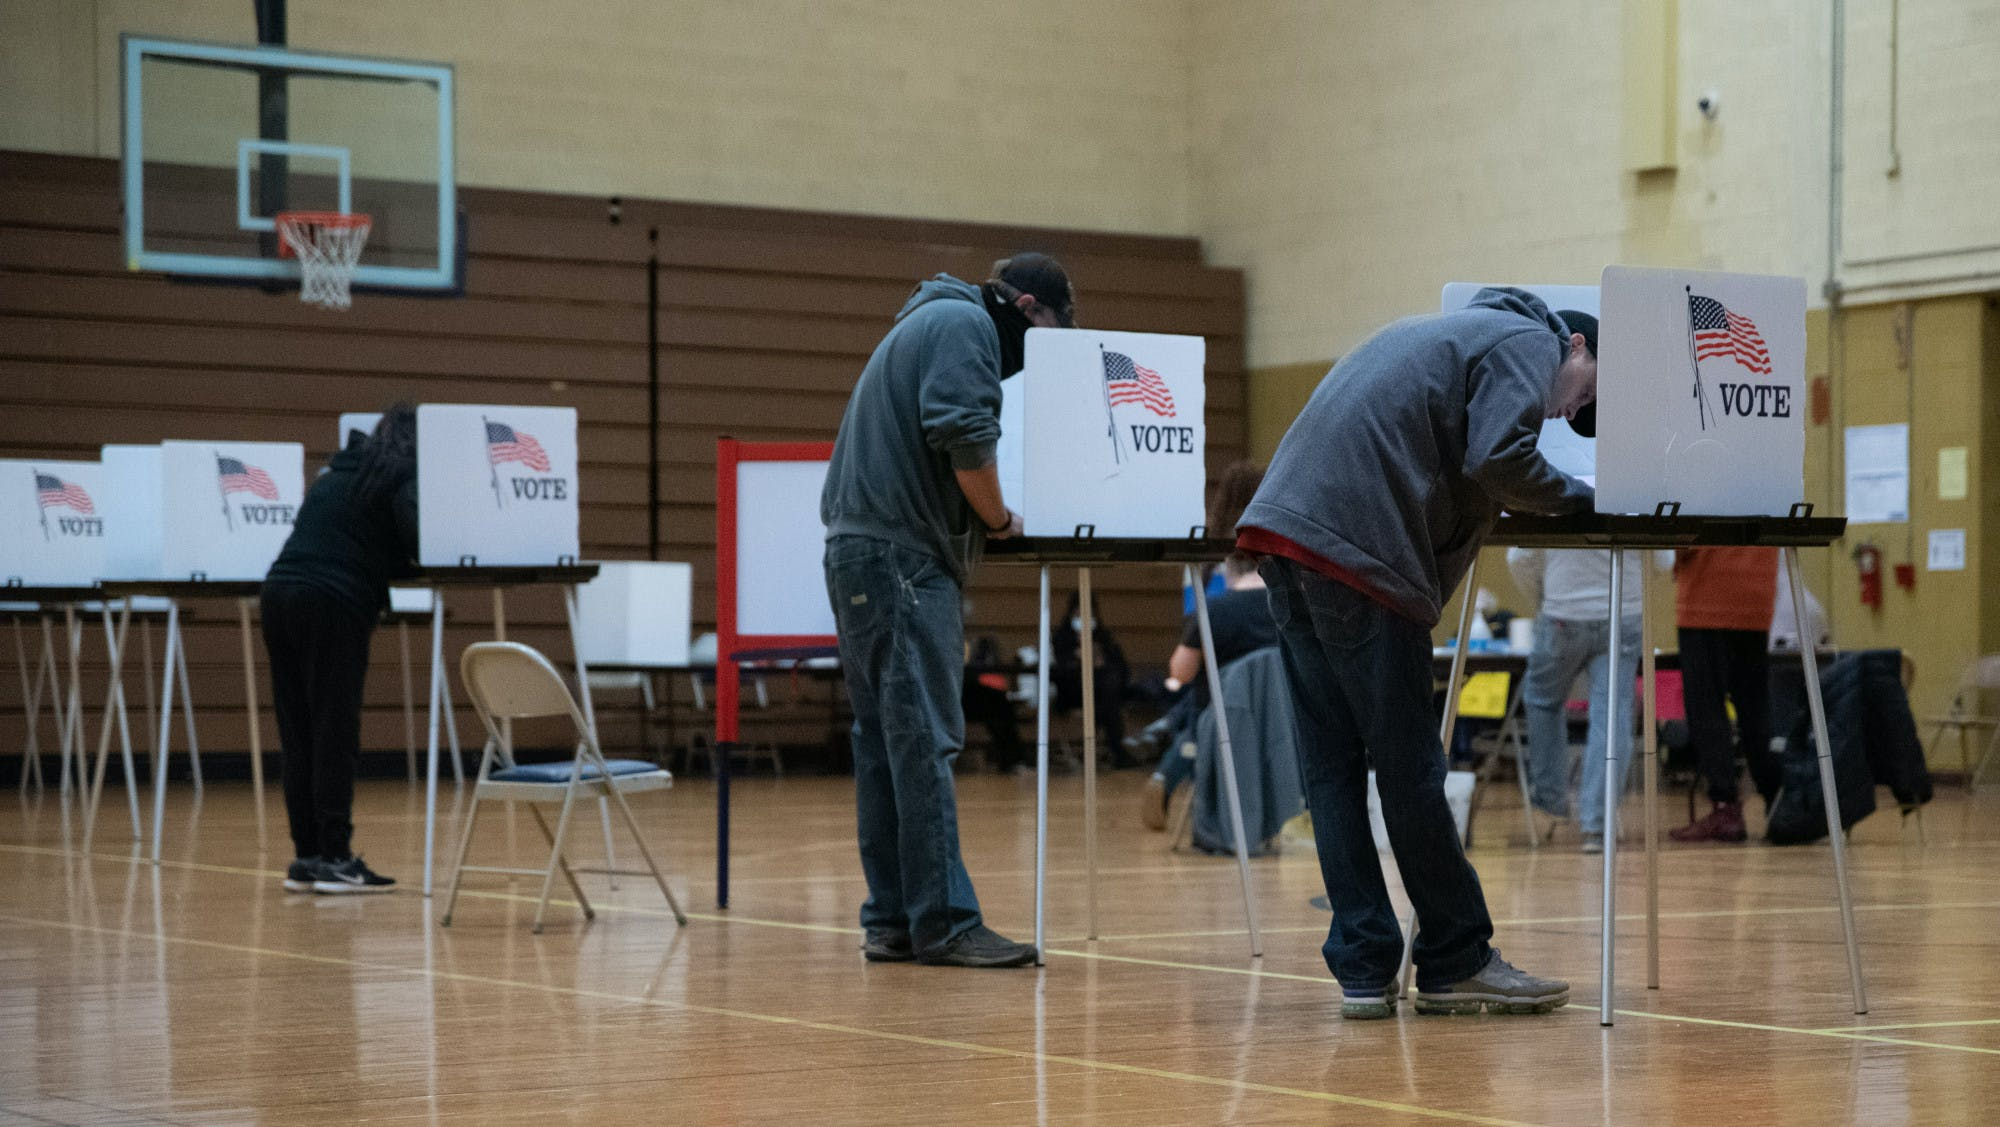 Three people lean into voting booths.